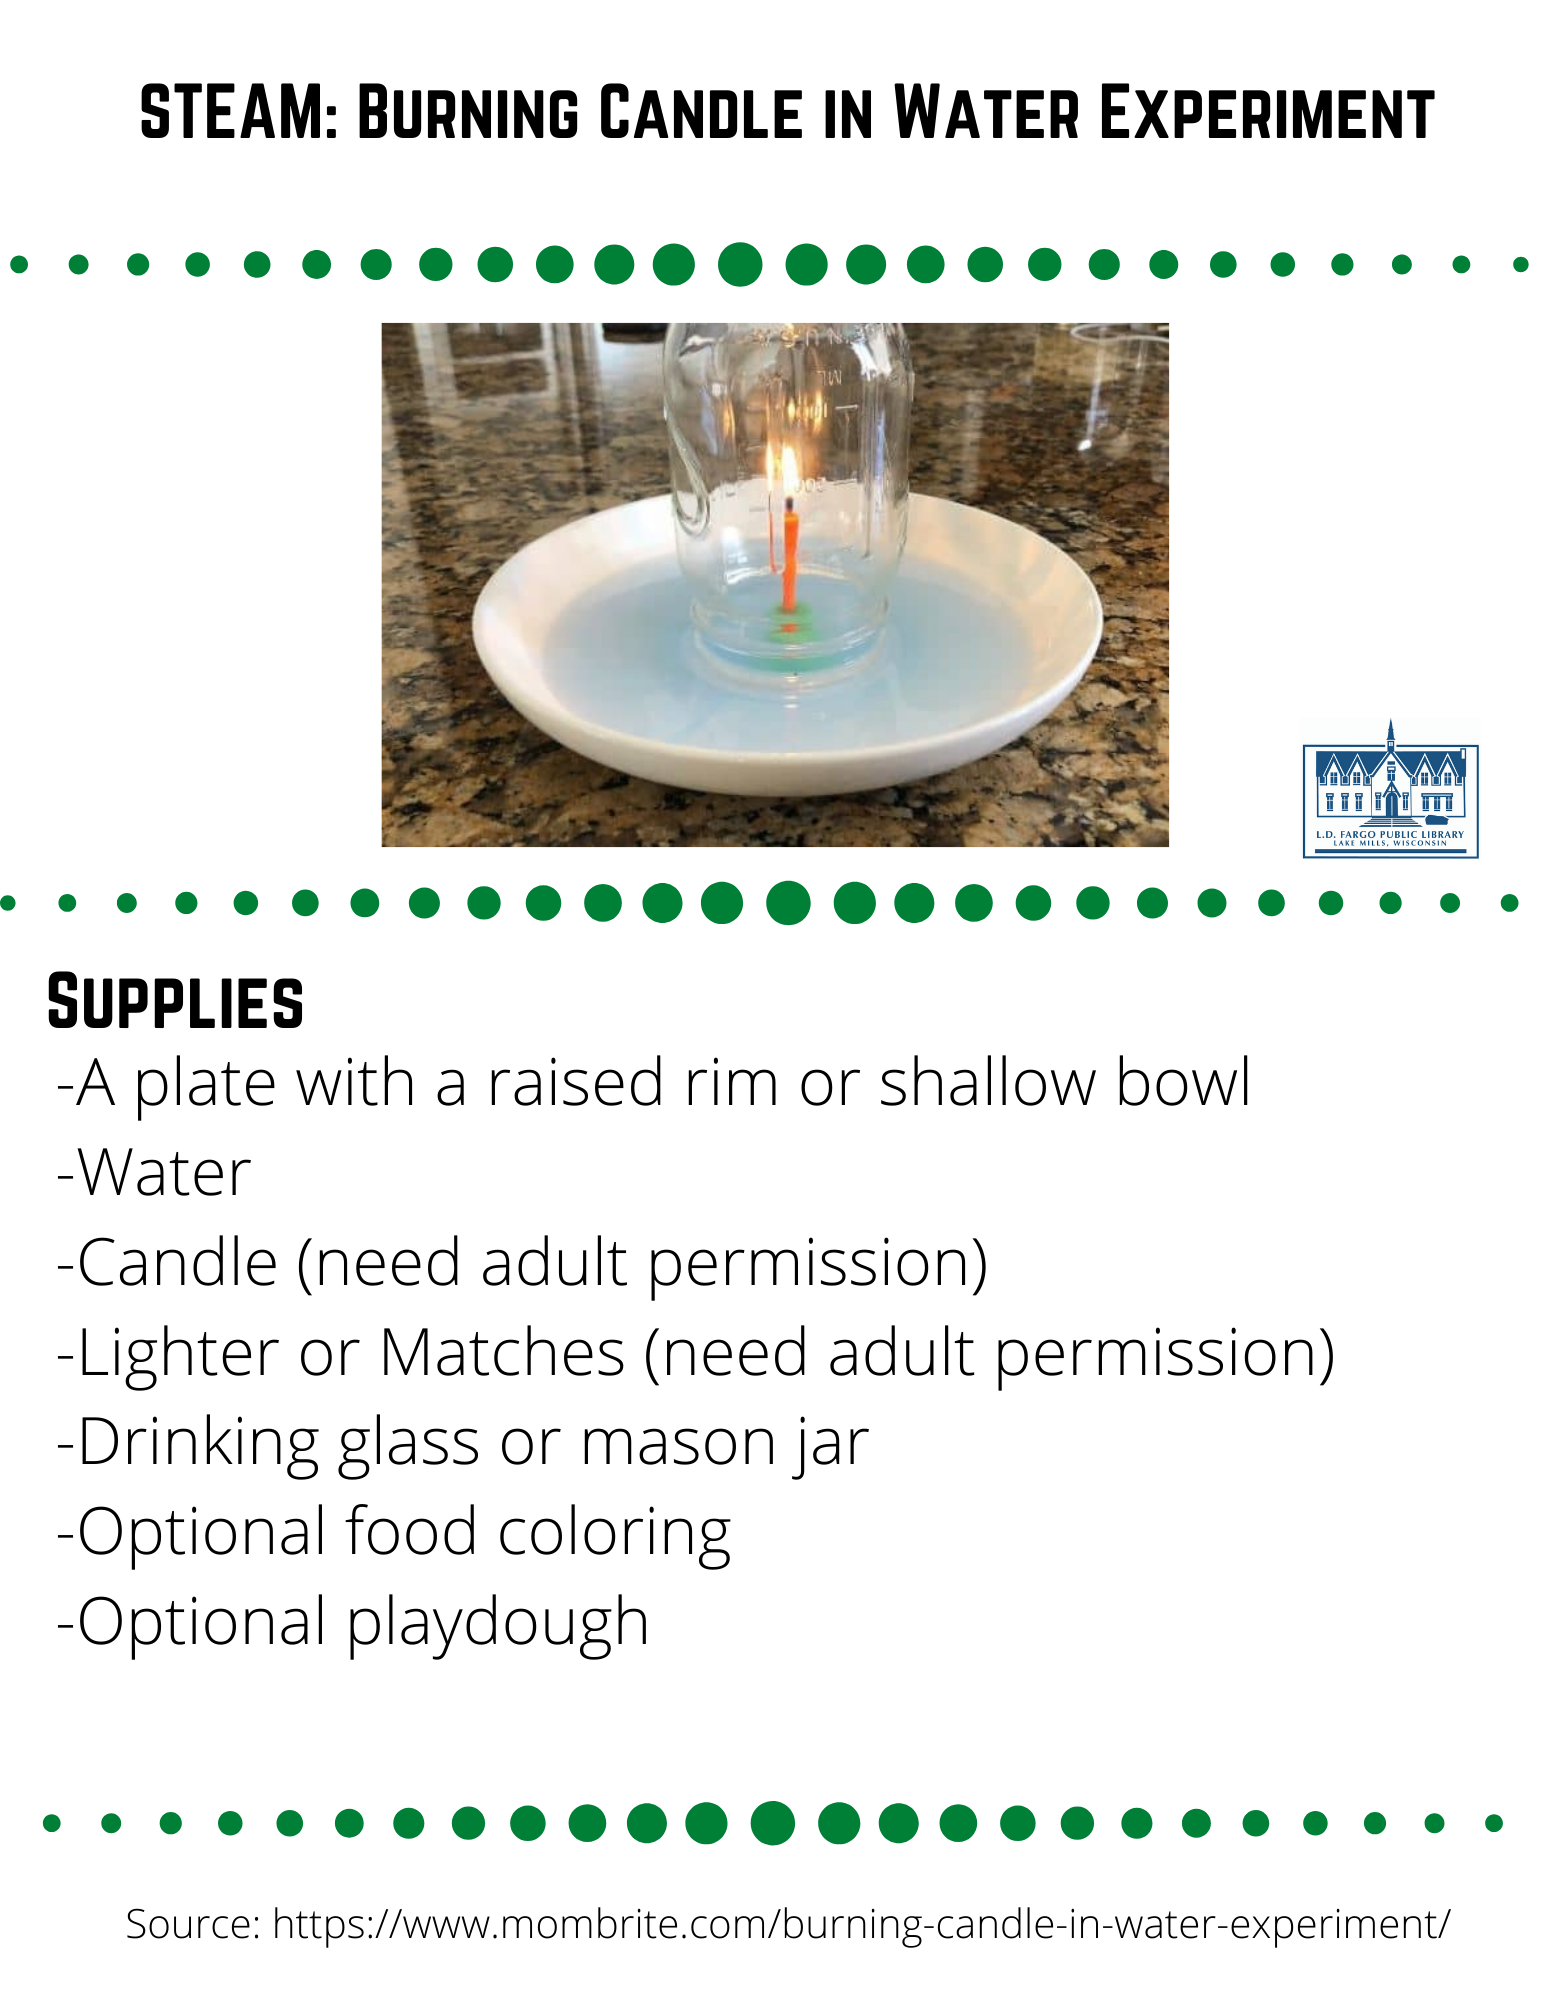 STEAM: Burning Candle in Water Experiment  Supplies  -A plate with a raised rim or shallow bowl -Water -Candle (need adult permission) -Lighter or Matches (need adult permission) -Drinking glass or mason jar -Optional food coloring -Optional playdough  Step 1  Place the candle in the middle of the plate or bowl.  Optional: If your candle can't stand by itself, use some play dough to help it stand upright.  Step 2  Optional: Mix water with food coloring in a separate container.  The food coloring helps you see the water better.  Pour the colored water into the plate to about 1 cm in depth.  Step 3  Light the candle with a lighter or match.  What do you think will happen when you place the glass over the candle?  Step 4  Turn the glass or mason jar upside down and place it over the candle. Watch what happens to the water.  The Science behind the rising water experiment  The candle went out without us blowing on it because it ran out of oxygen.  The flame used up oxygen as it burned, and since the candle was trapped inside a glass, it quickly used up the available oxygen.  Without oxygen inside the glass, the candle could not keeping burning.  When the candle was still burning, the flame heated up the air inside the glass.  The hot air expanded quickly and created higher air pressure inside the glass than outside the glass.  To restore equilibrium, some of the high-pressure air inside escaped from under the glass.  You may have seen tiny bubbles escaping from underneath the glass.  When the flame extinguished, the air inside the glass cooled down.  Cooling air contracted, which in turn lowered the air pressure inside the glass. Just as before when air rushed out from the glass to balance the air pressure between the inside and outside of the glass, now air wants to get in.  As a result, the high-pressure air outside the glass pushes on the water, forcing the water into the glass.  Visually, we can see the water level rising until the air pressure inside the glass is th